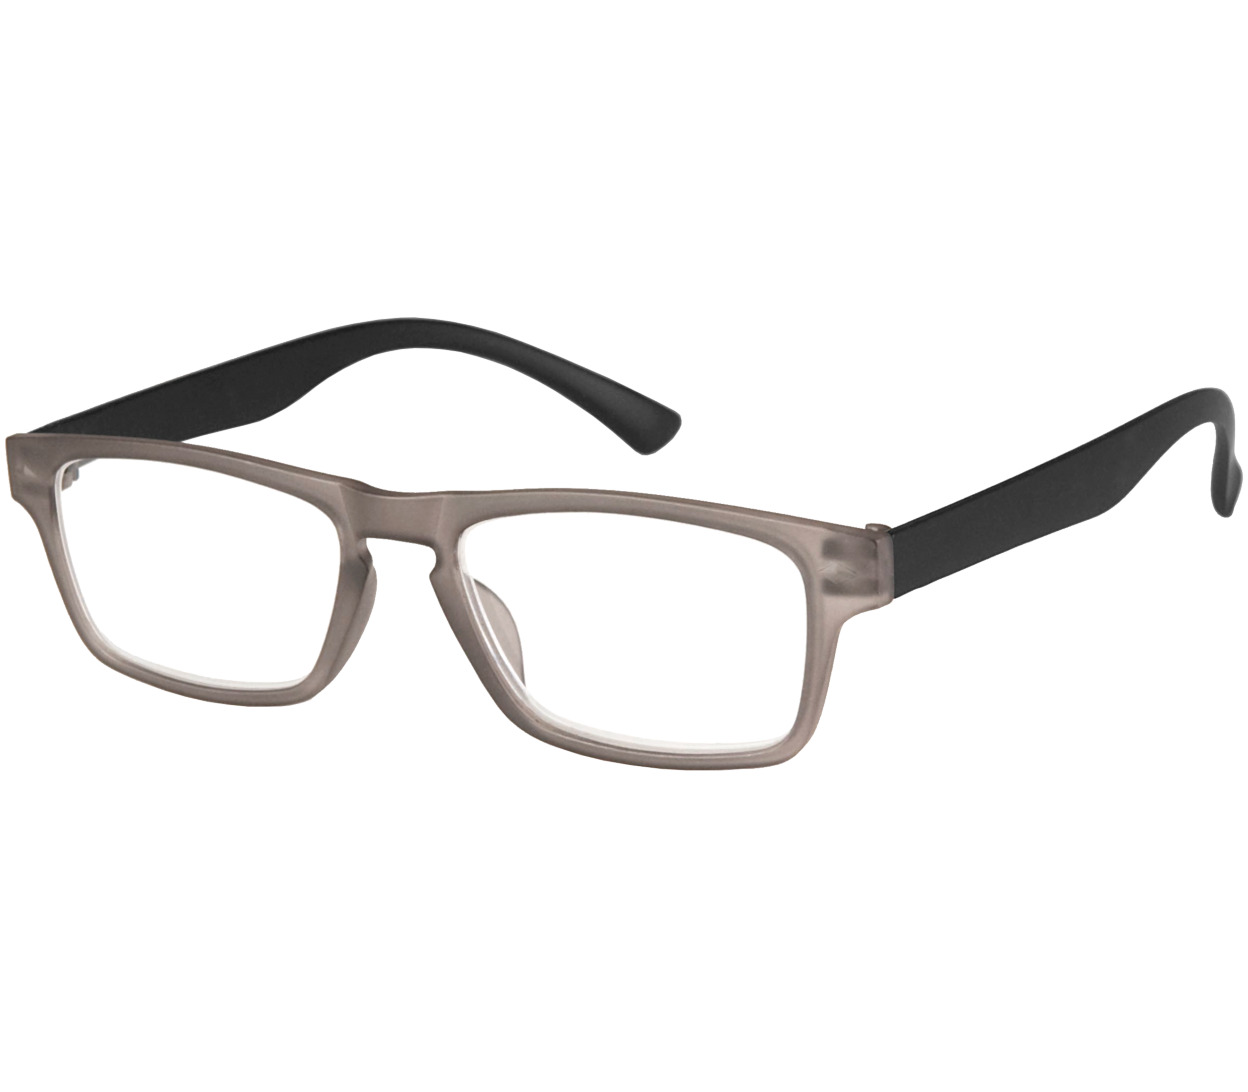 Main Image (Angle) - Sugar (Grey) Classic Reading Glasses